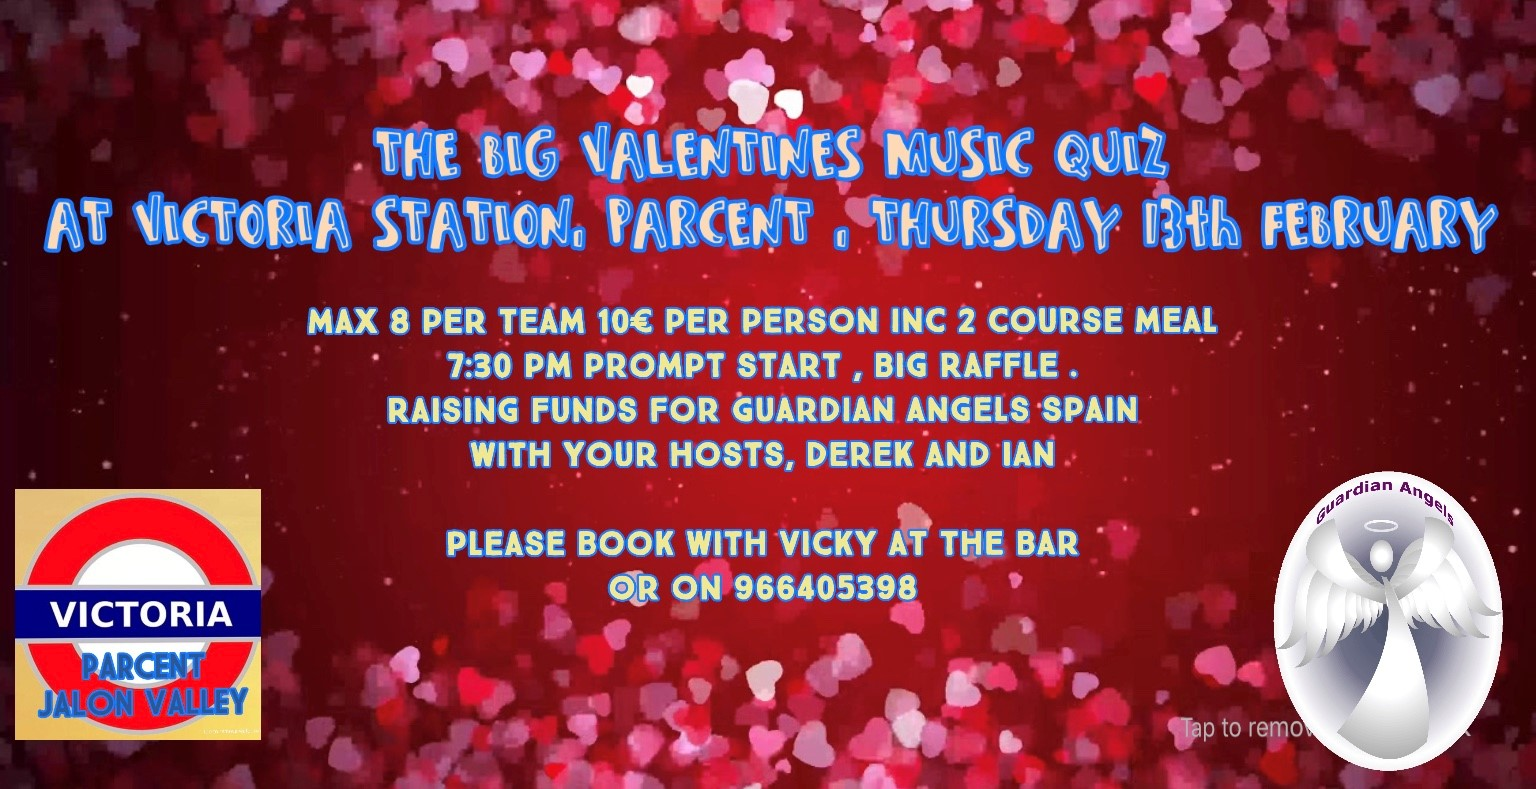 The Big Valentines Music Quiz @ Victoria Station, Parcent